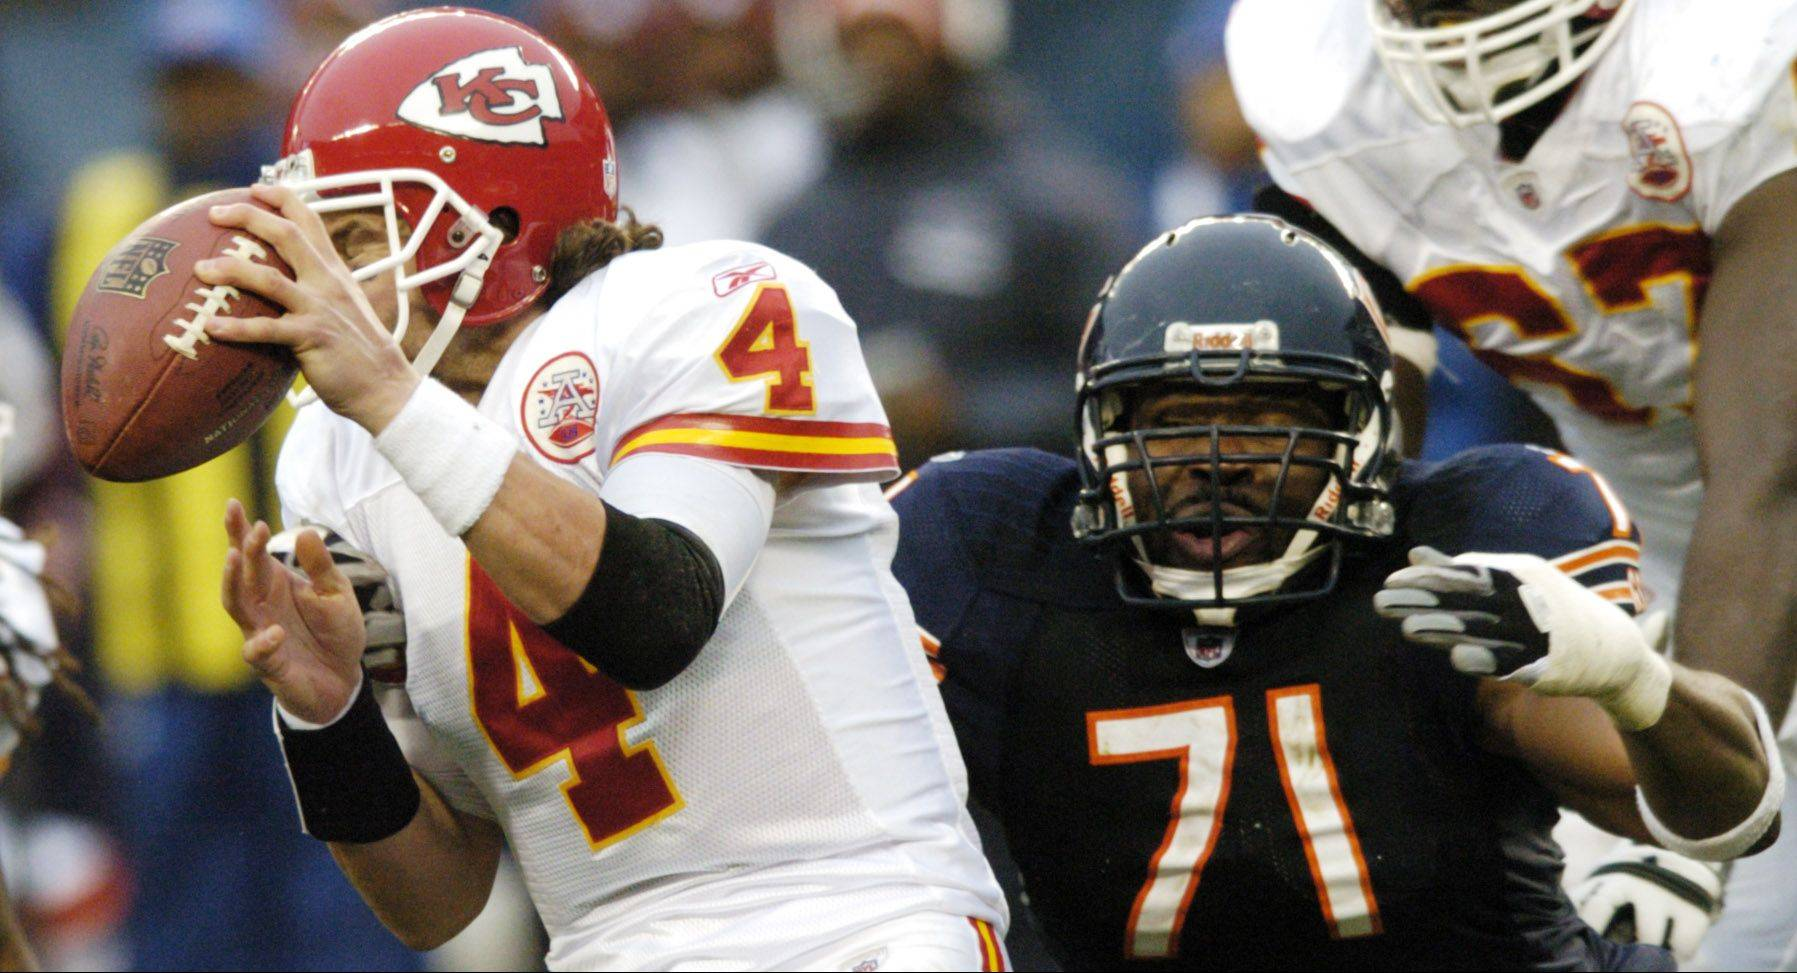 Defensive end Israel Idonije�s credentials against the run are more than solid. He led all Bears linemen by a wide margin with 57 tackles last season, 30 more than Julius Peppers � although that�s partly because offenses usually choose to avoid Peppers. But the Bears want more from their defensive ends in the pass rush this season.